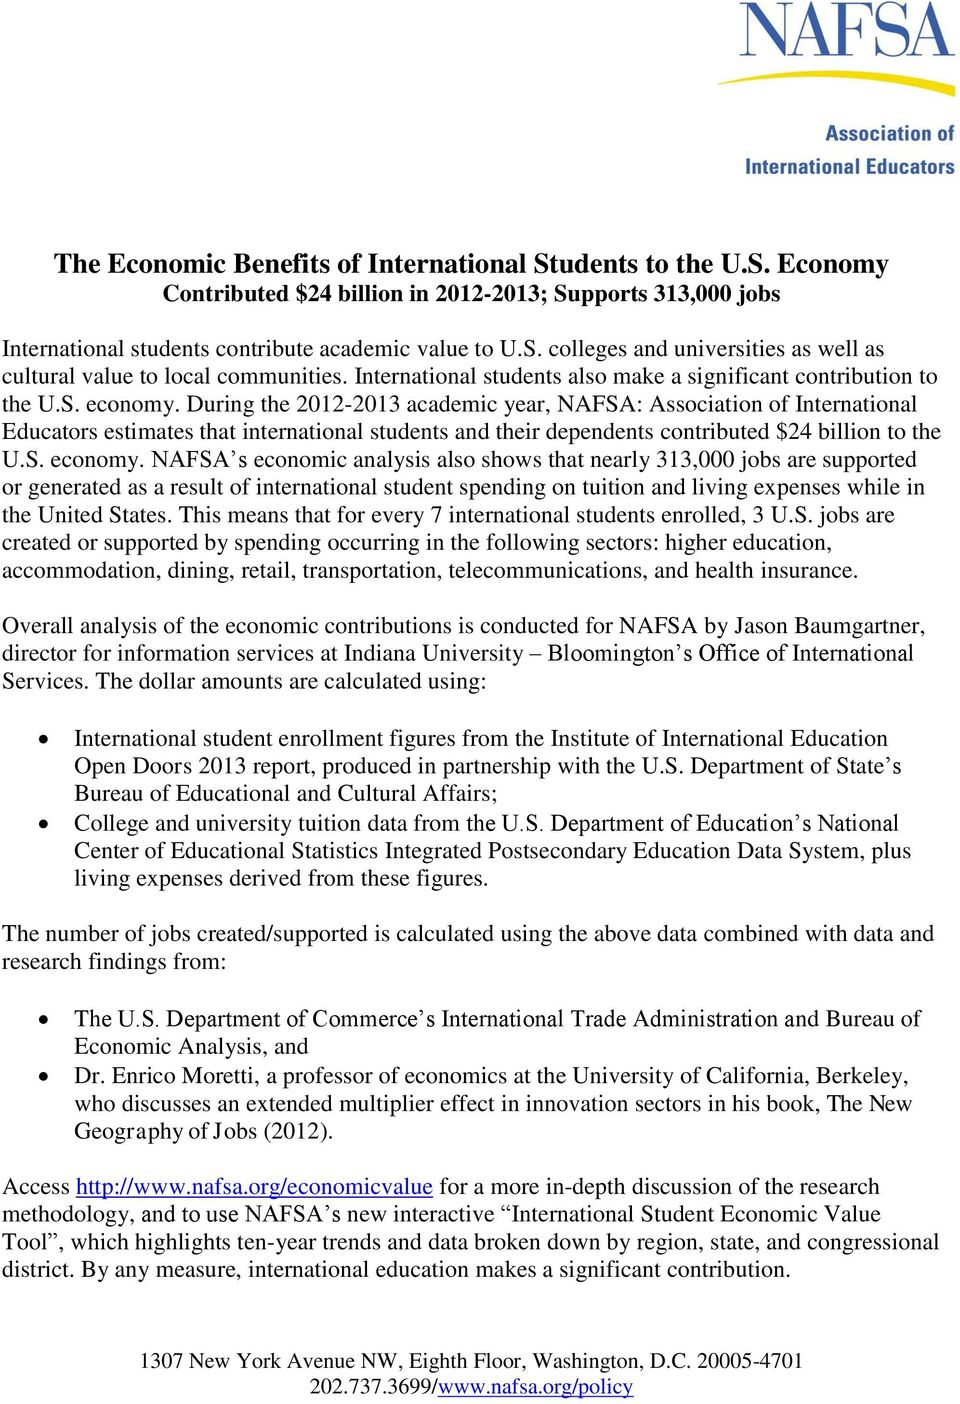 During the 2012-201 academic year, NAFSA: Association of International Educators estimates that international students and their dependents contributed $2 billion to the U.S. economy.